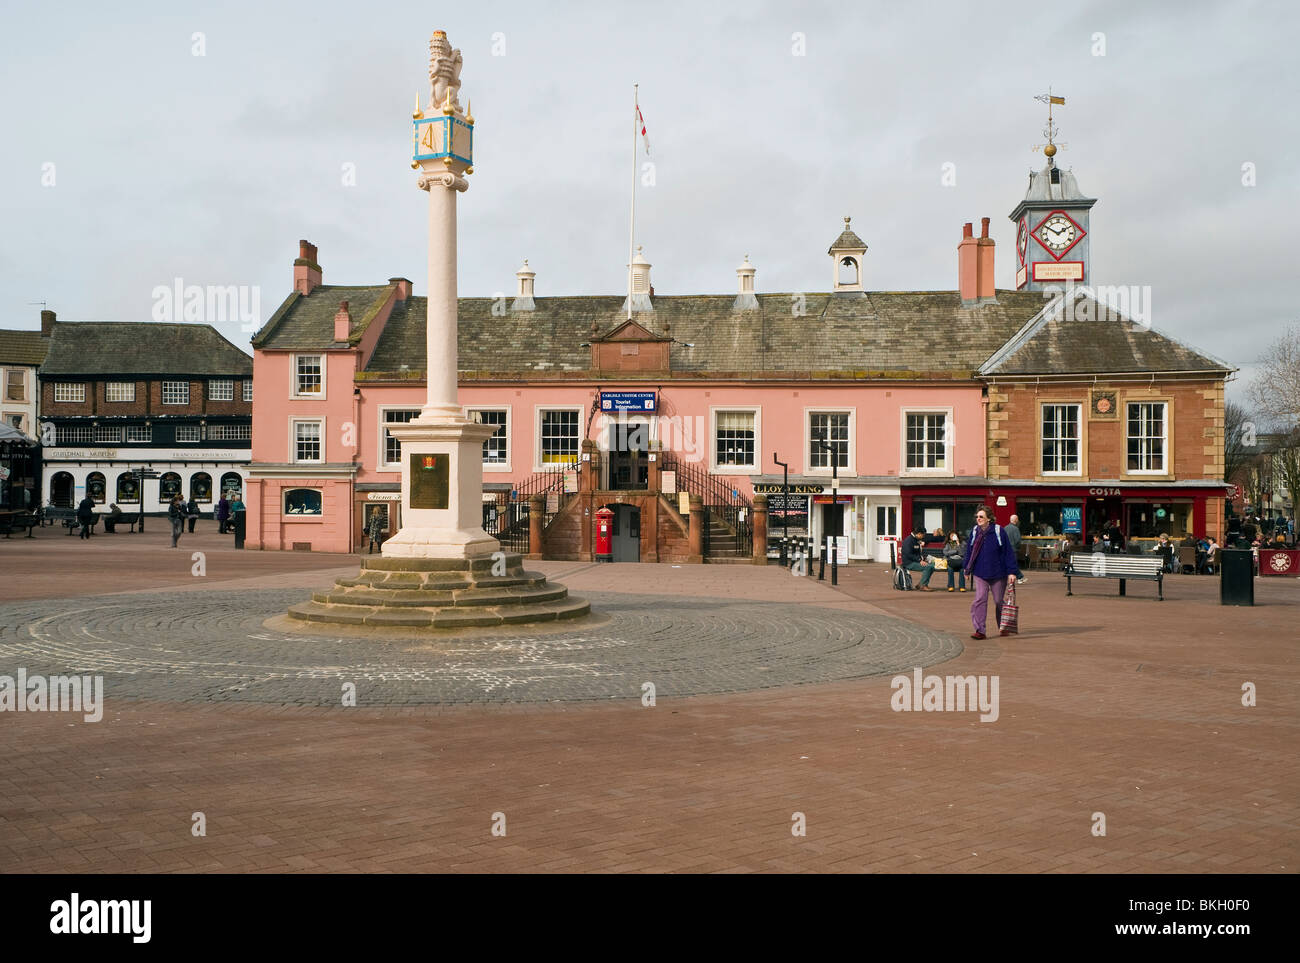 The centre of Carlisle, Cumbria, with the old Town Hall now the city's Tourist Information Centre - Stock Image